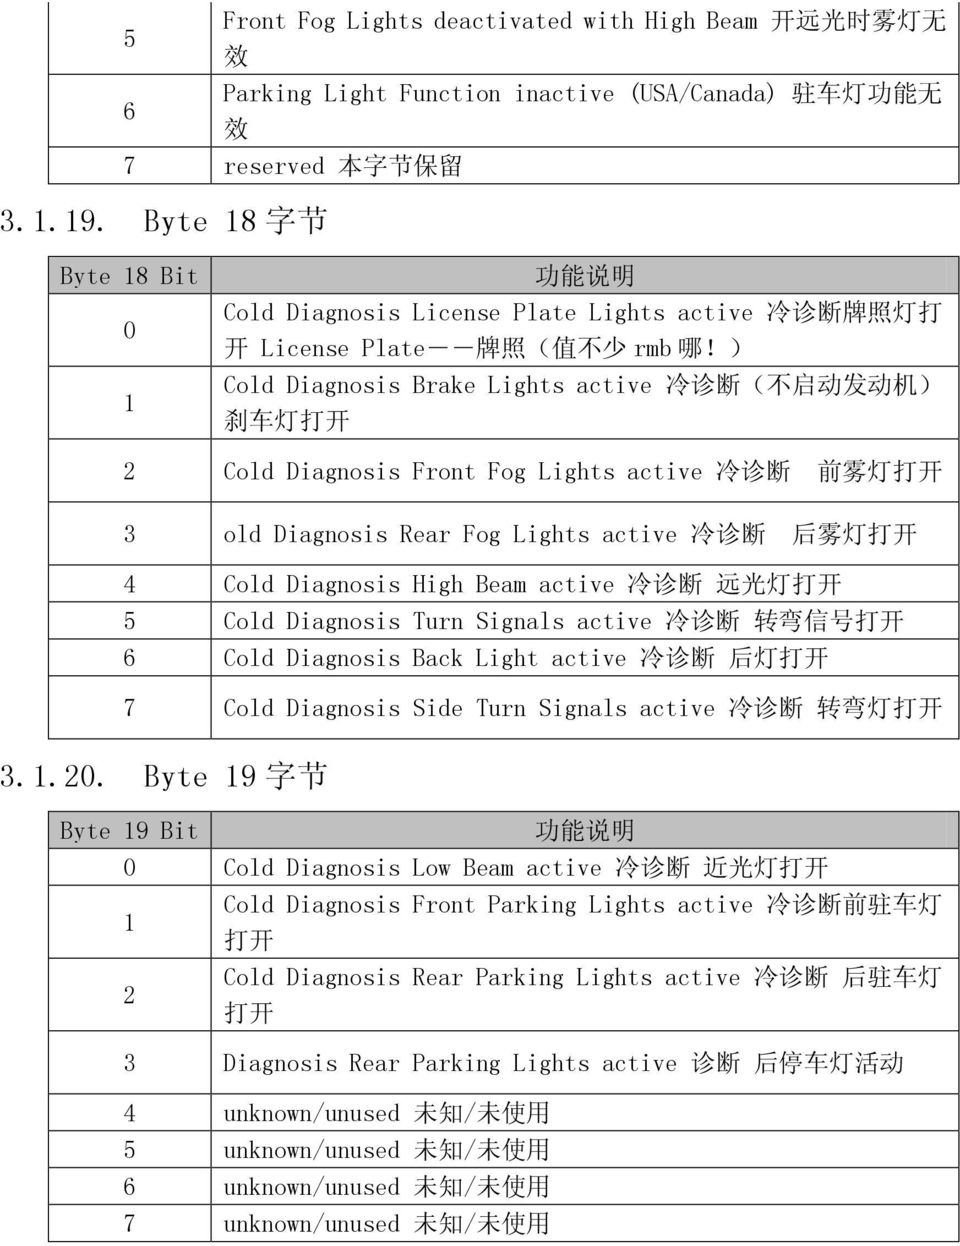 ) Cold Diagnosis Brake Lights active 冷 诊 断 ( 不 启 动 发 动 机 ) 刹 车 灯 打 开 2 Cold Diagnosis Front Fog Lights active 冷 诊 断 前 雾 灯 打 开 3 old Diagnosis Rear Fog Lights active 冷 诊 断 后 雾 灯 打 开 4 Cold Diagnosis